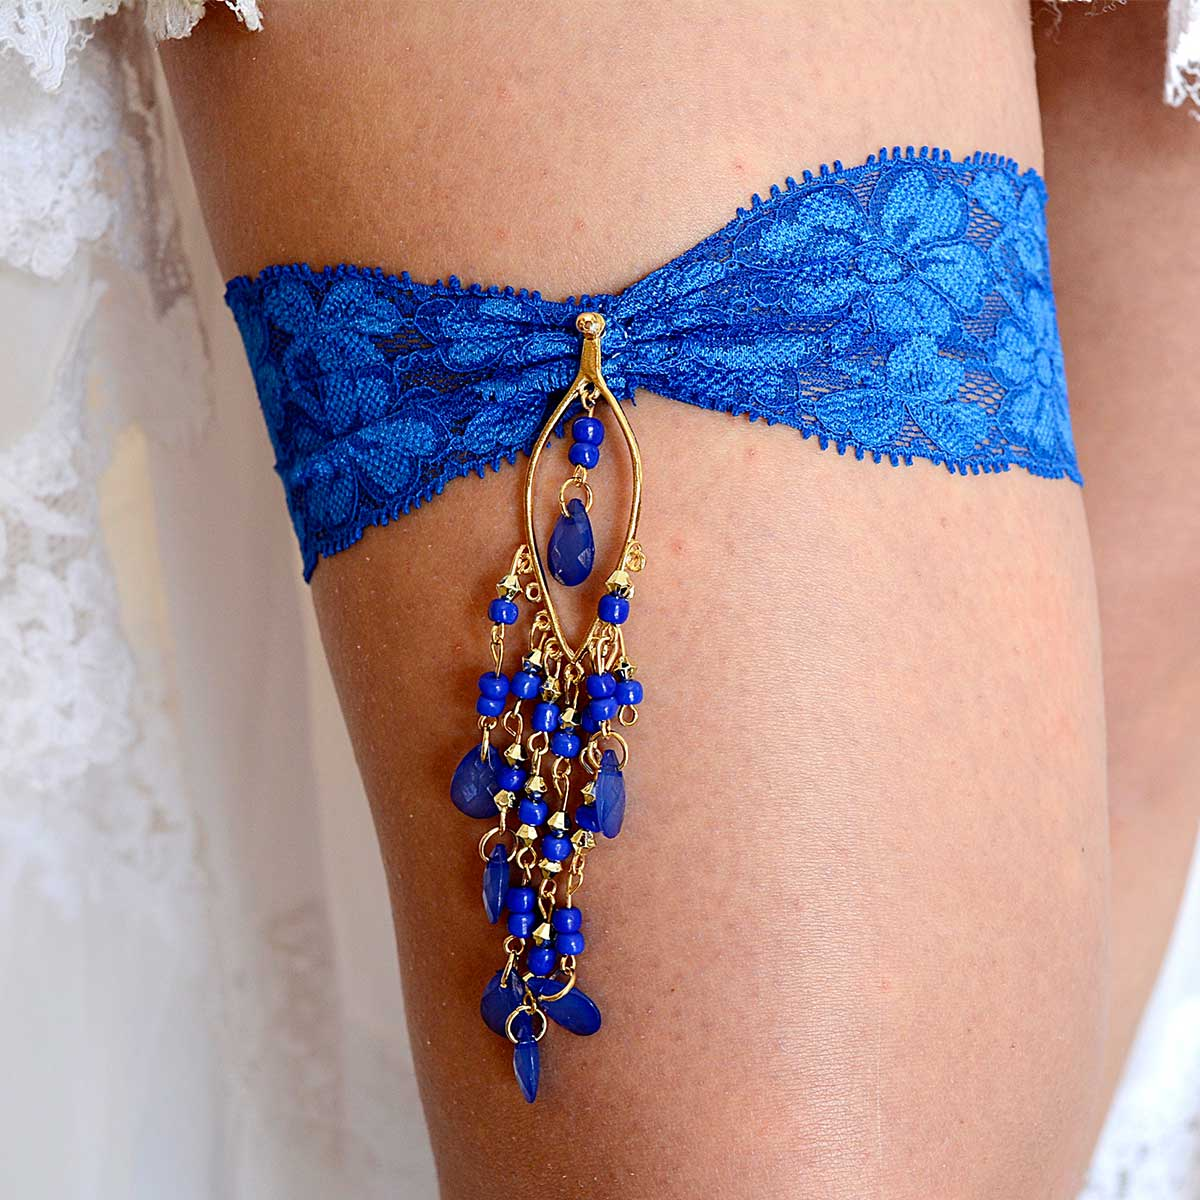 Royal Blue Wedding Garter Belt With Gold & Blue Rhinestone - Wedding Garter - SuzannaM Designs